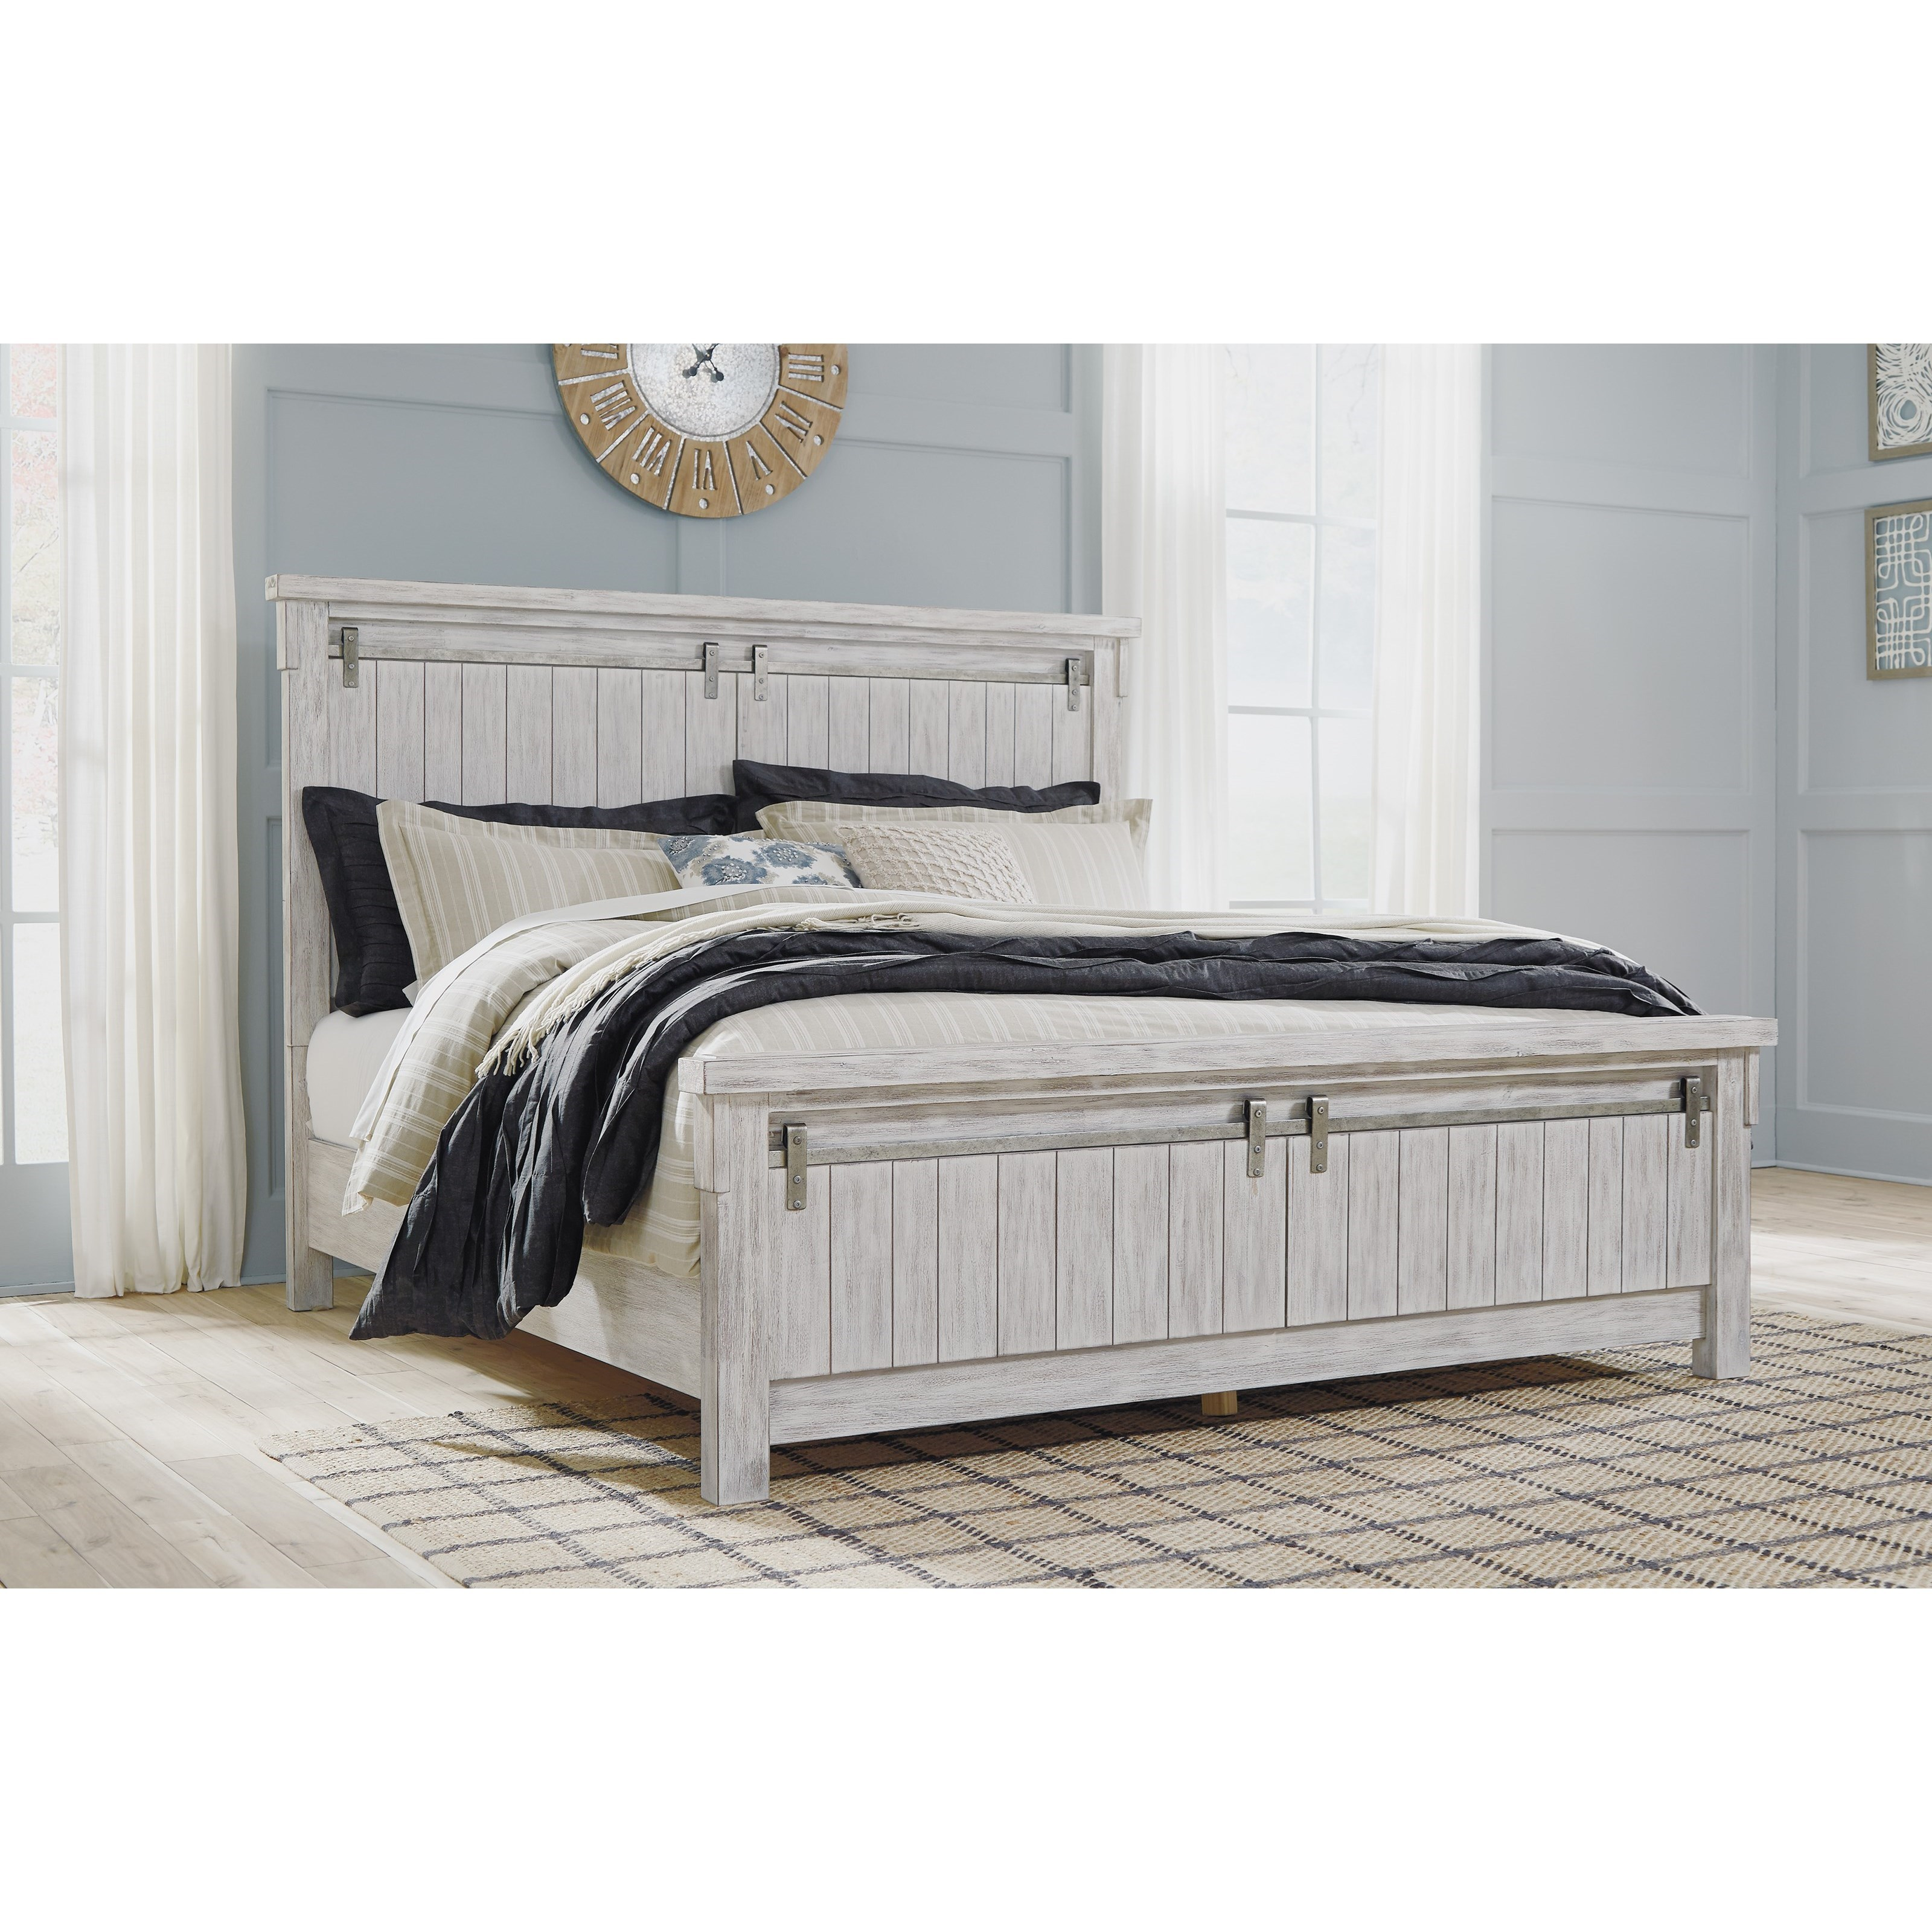 Signature Design by Ashley Brashland Queen Panel Bed - Item Number: B740-57+96+54